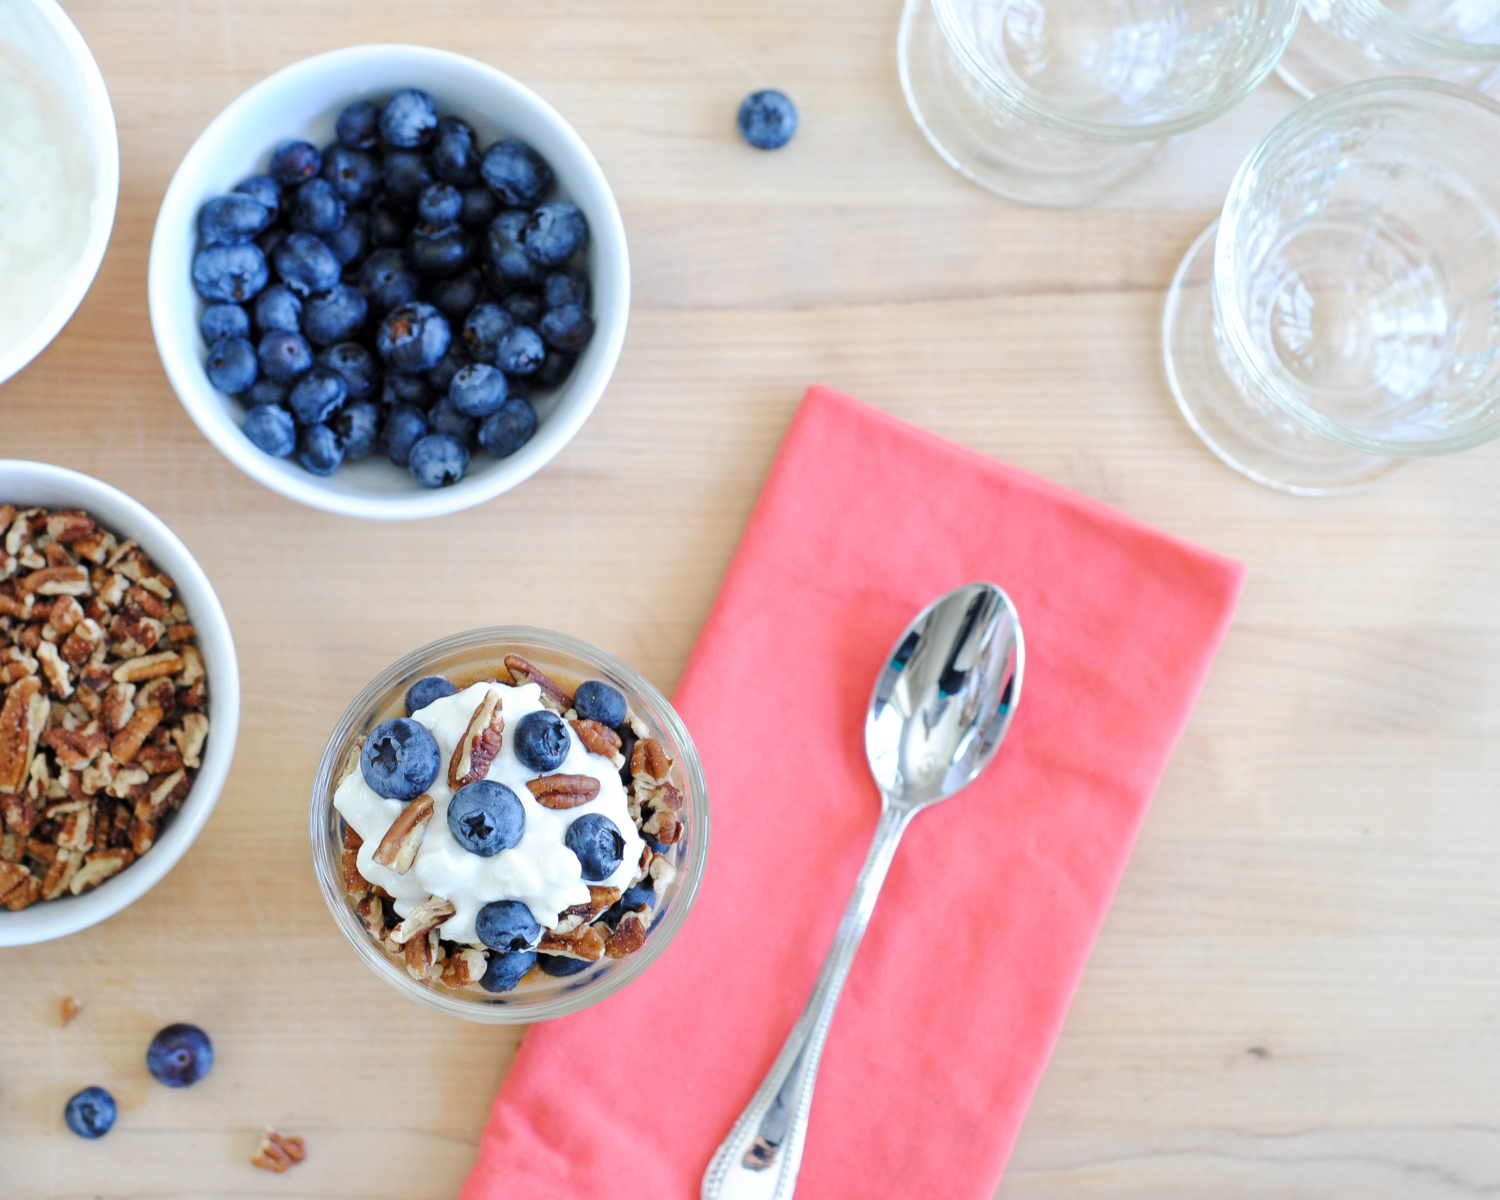 Cottage cheese parfait with spiced applesauce, blueberries, and pecans. Perfect for a healthy, protein-packed, calcium-rich breakfast, lunch, snack or dessert. Seriously TO DIE FOR!!